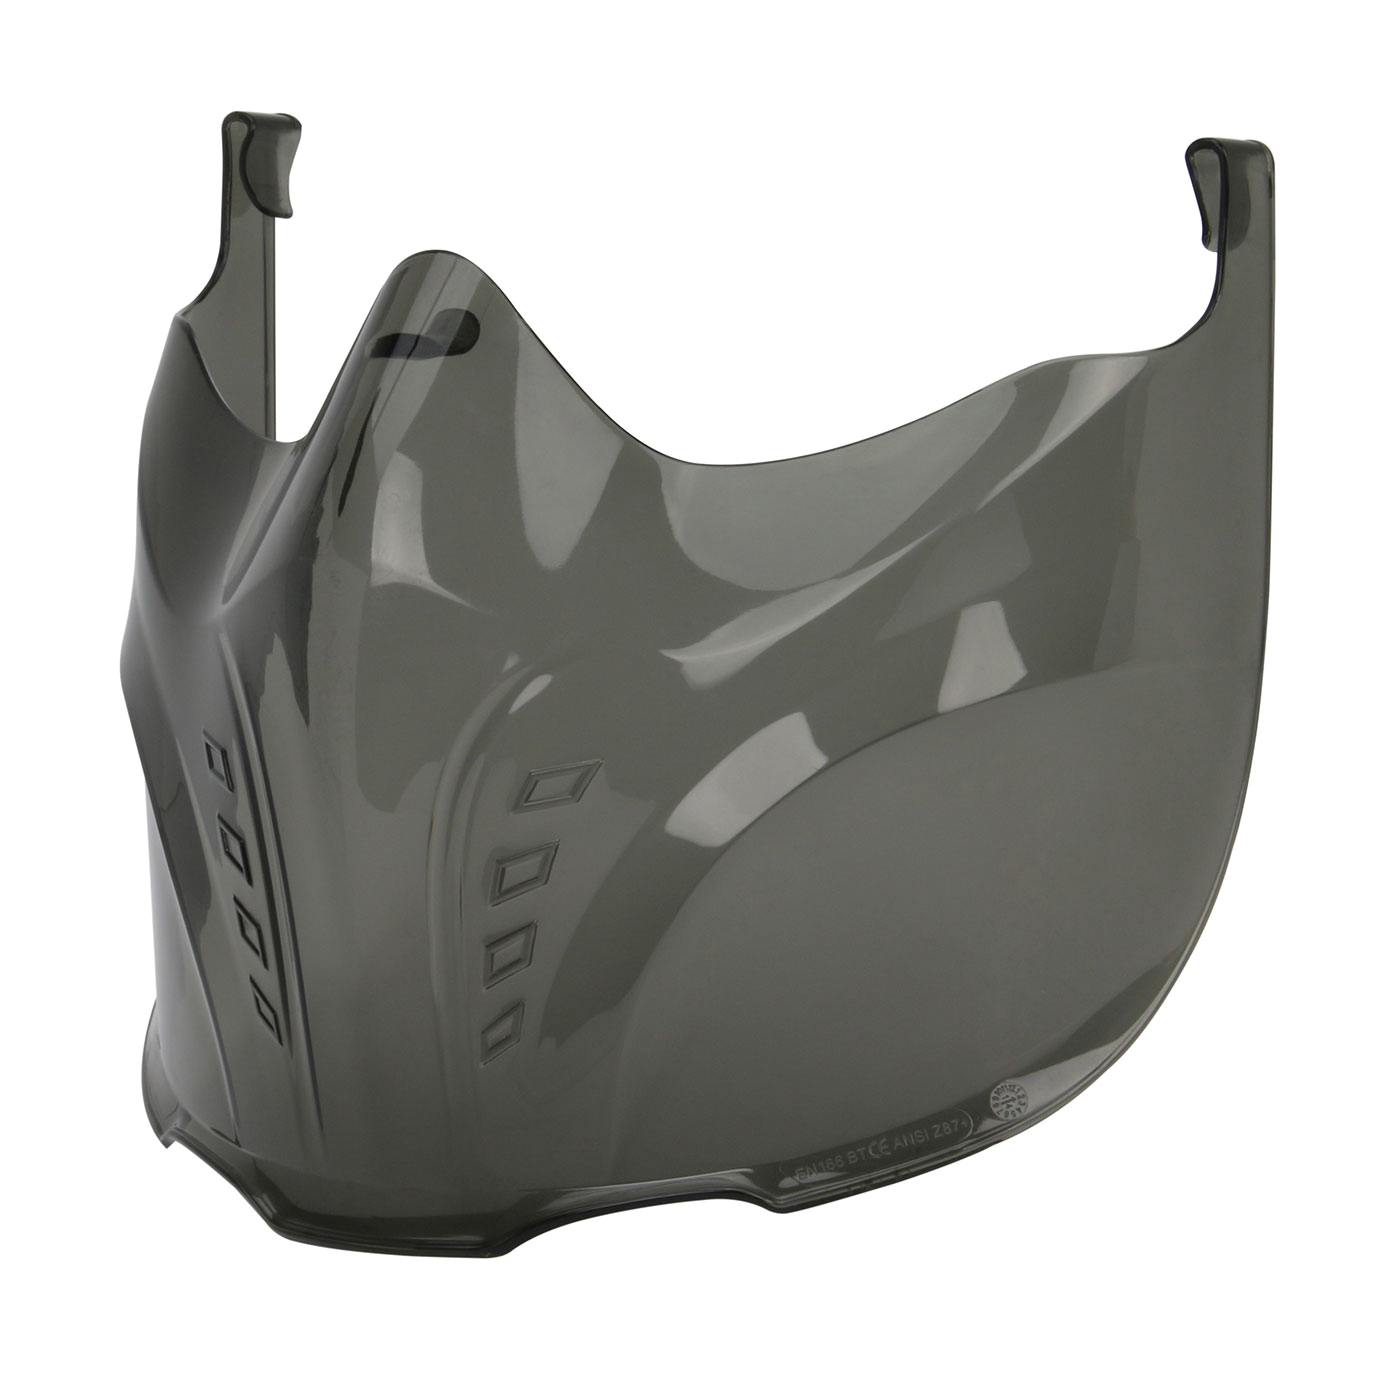 Bouton® 251-60-000V Stone™ 251-60 Safety Visor, Clear Gray, Polycarbonate, For Use With Stone™ Goggles, Specifications Met: ANSI Specified